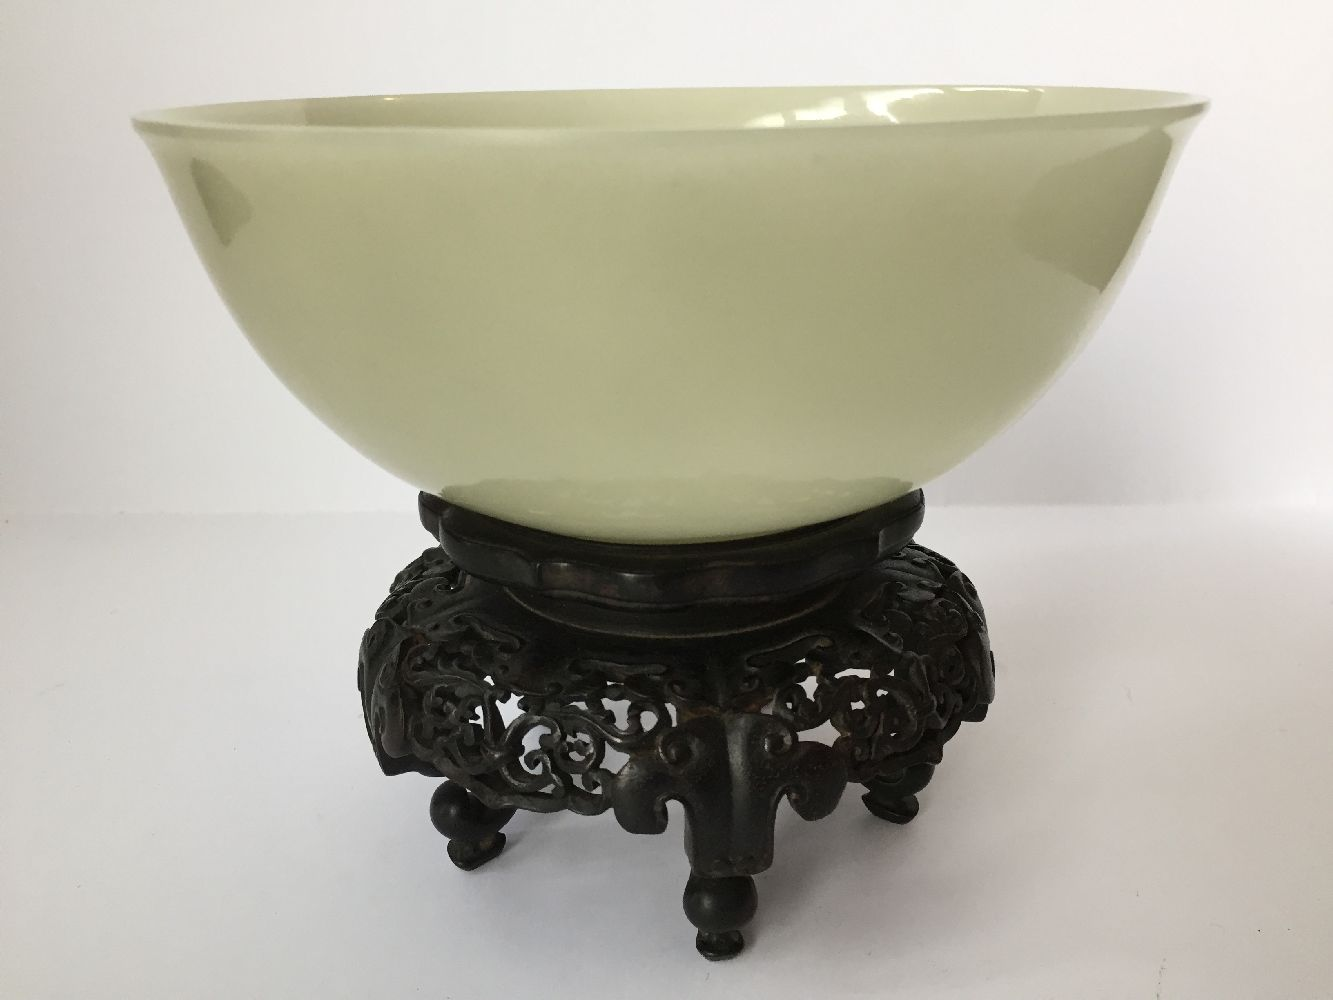 A pair of Chinese pale celadon jade bowls, 19th century, each carved with deep sides and a - Image 7 of 27